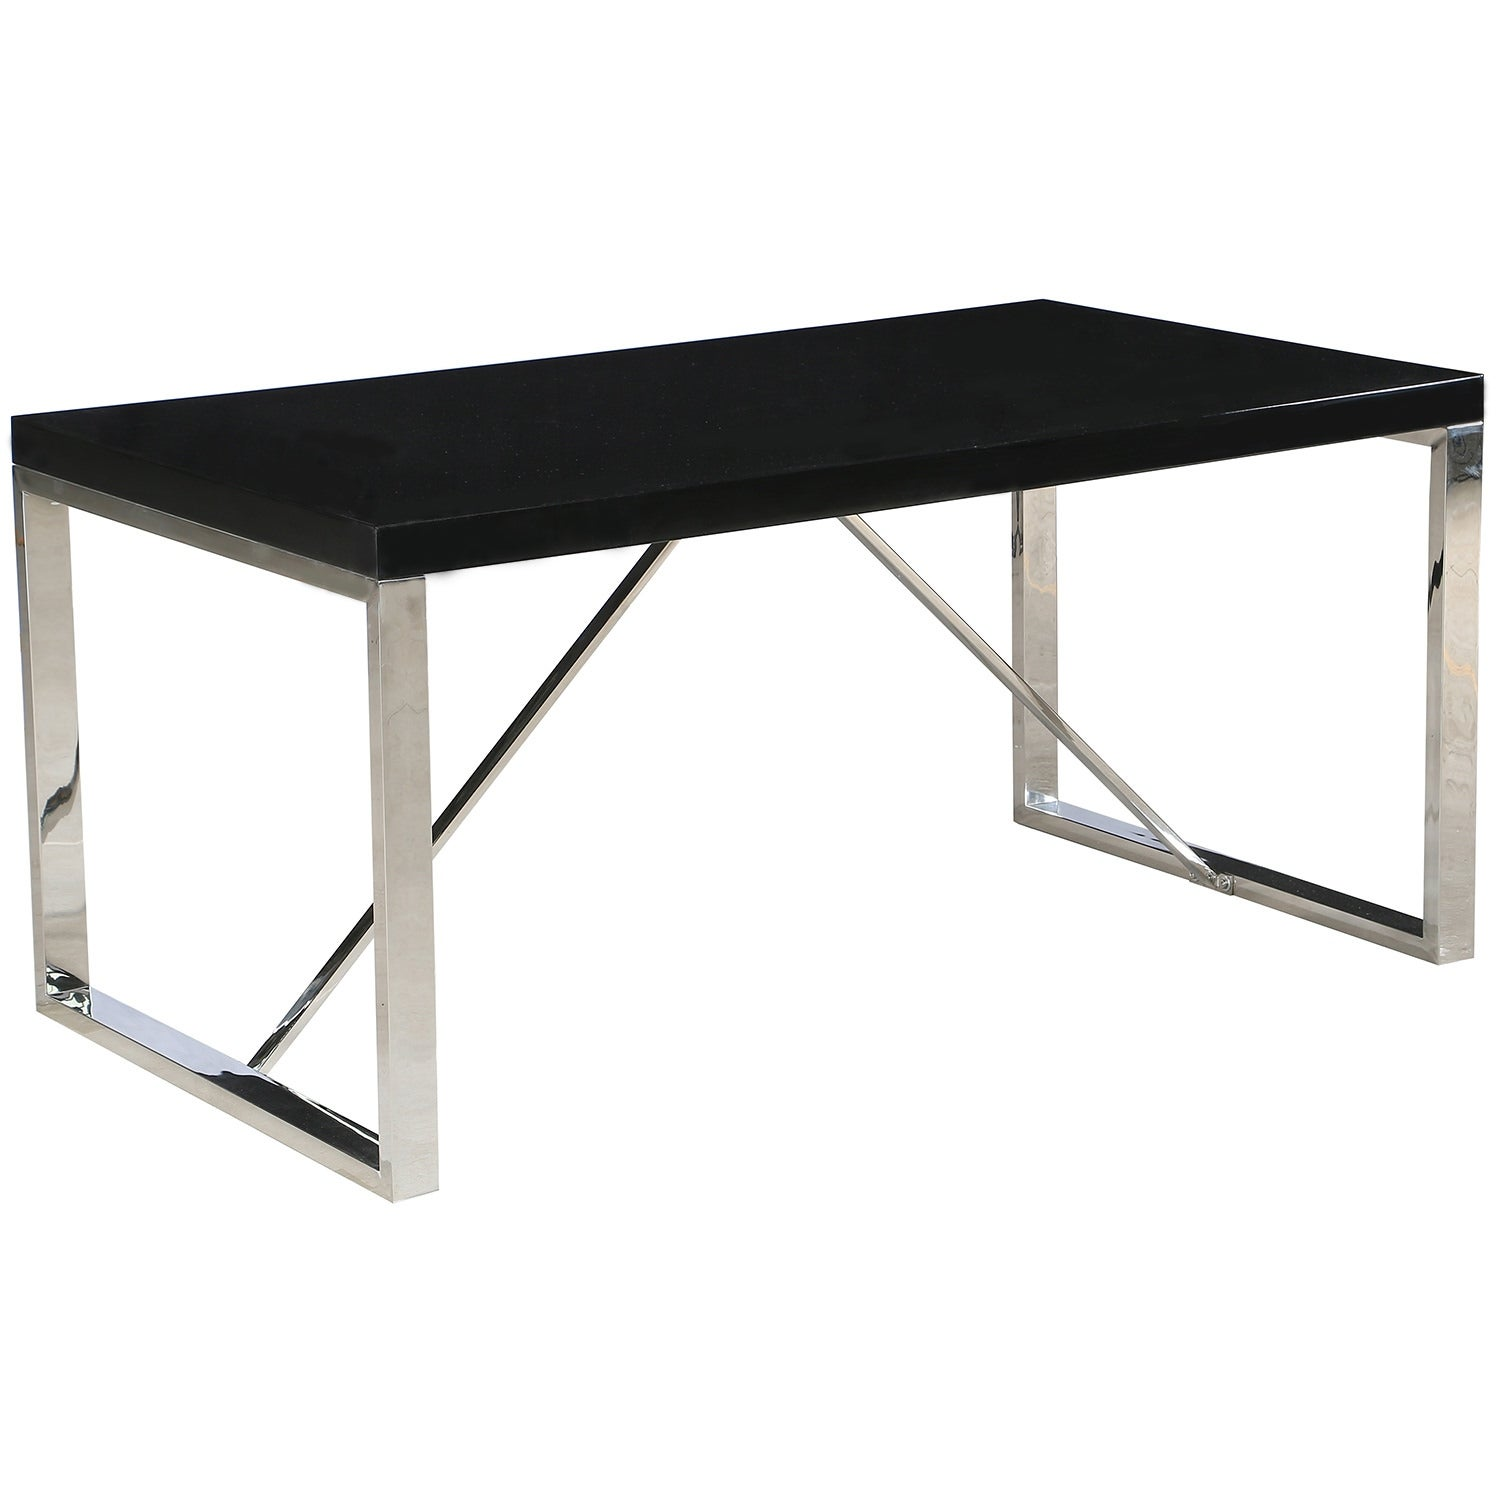 2xhome Modern Mid Century Black Glossy Paint Wood Top Silver Chrome Steel Leg Base Rectangle Dining Table Home Office Restaurant